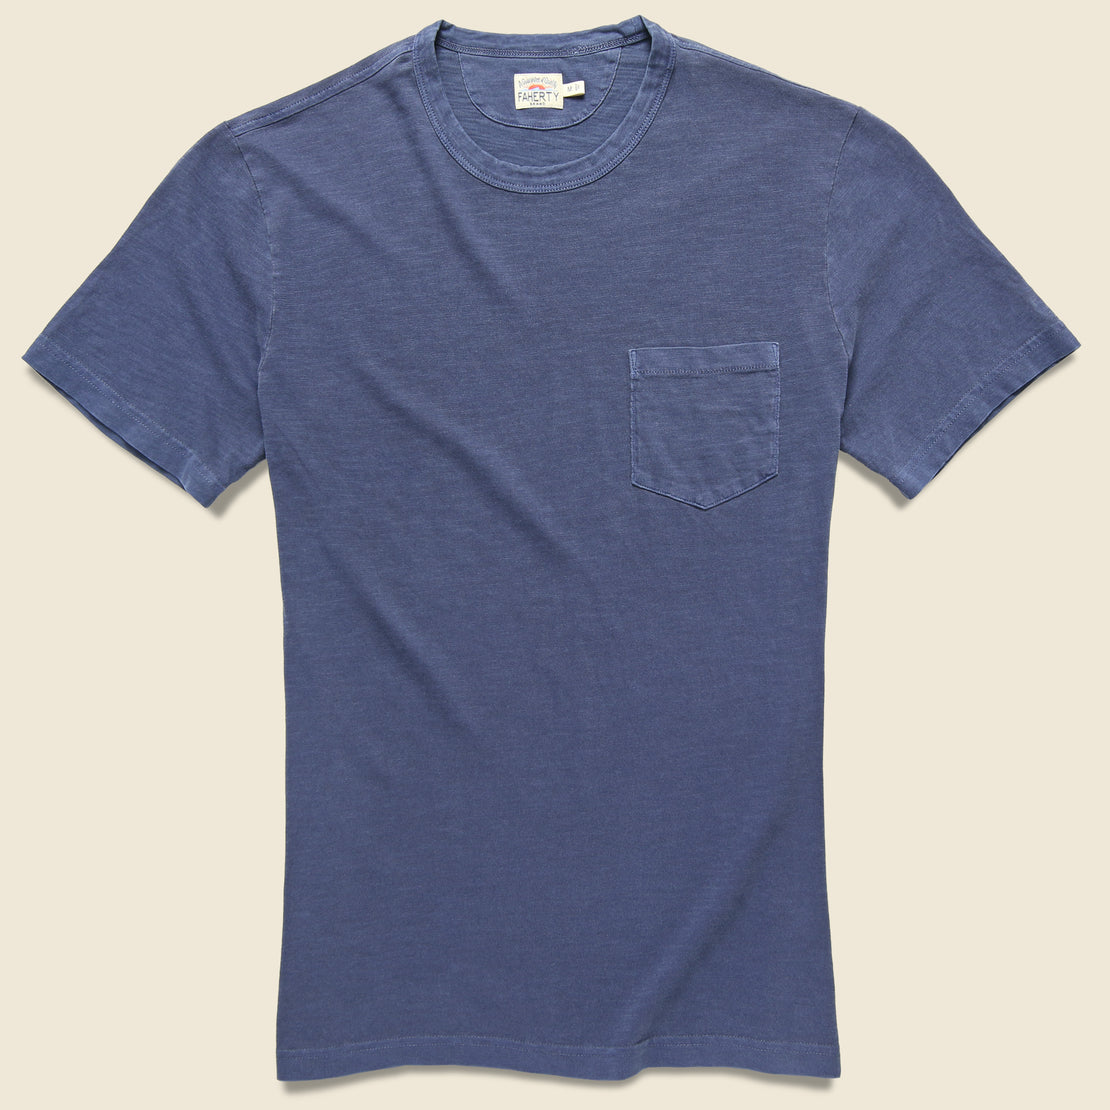 Faherty Garment Dyed Pocket Tee - Navy